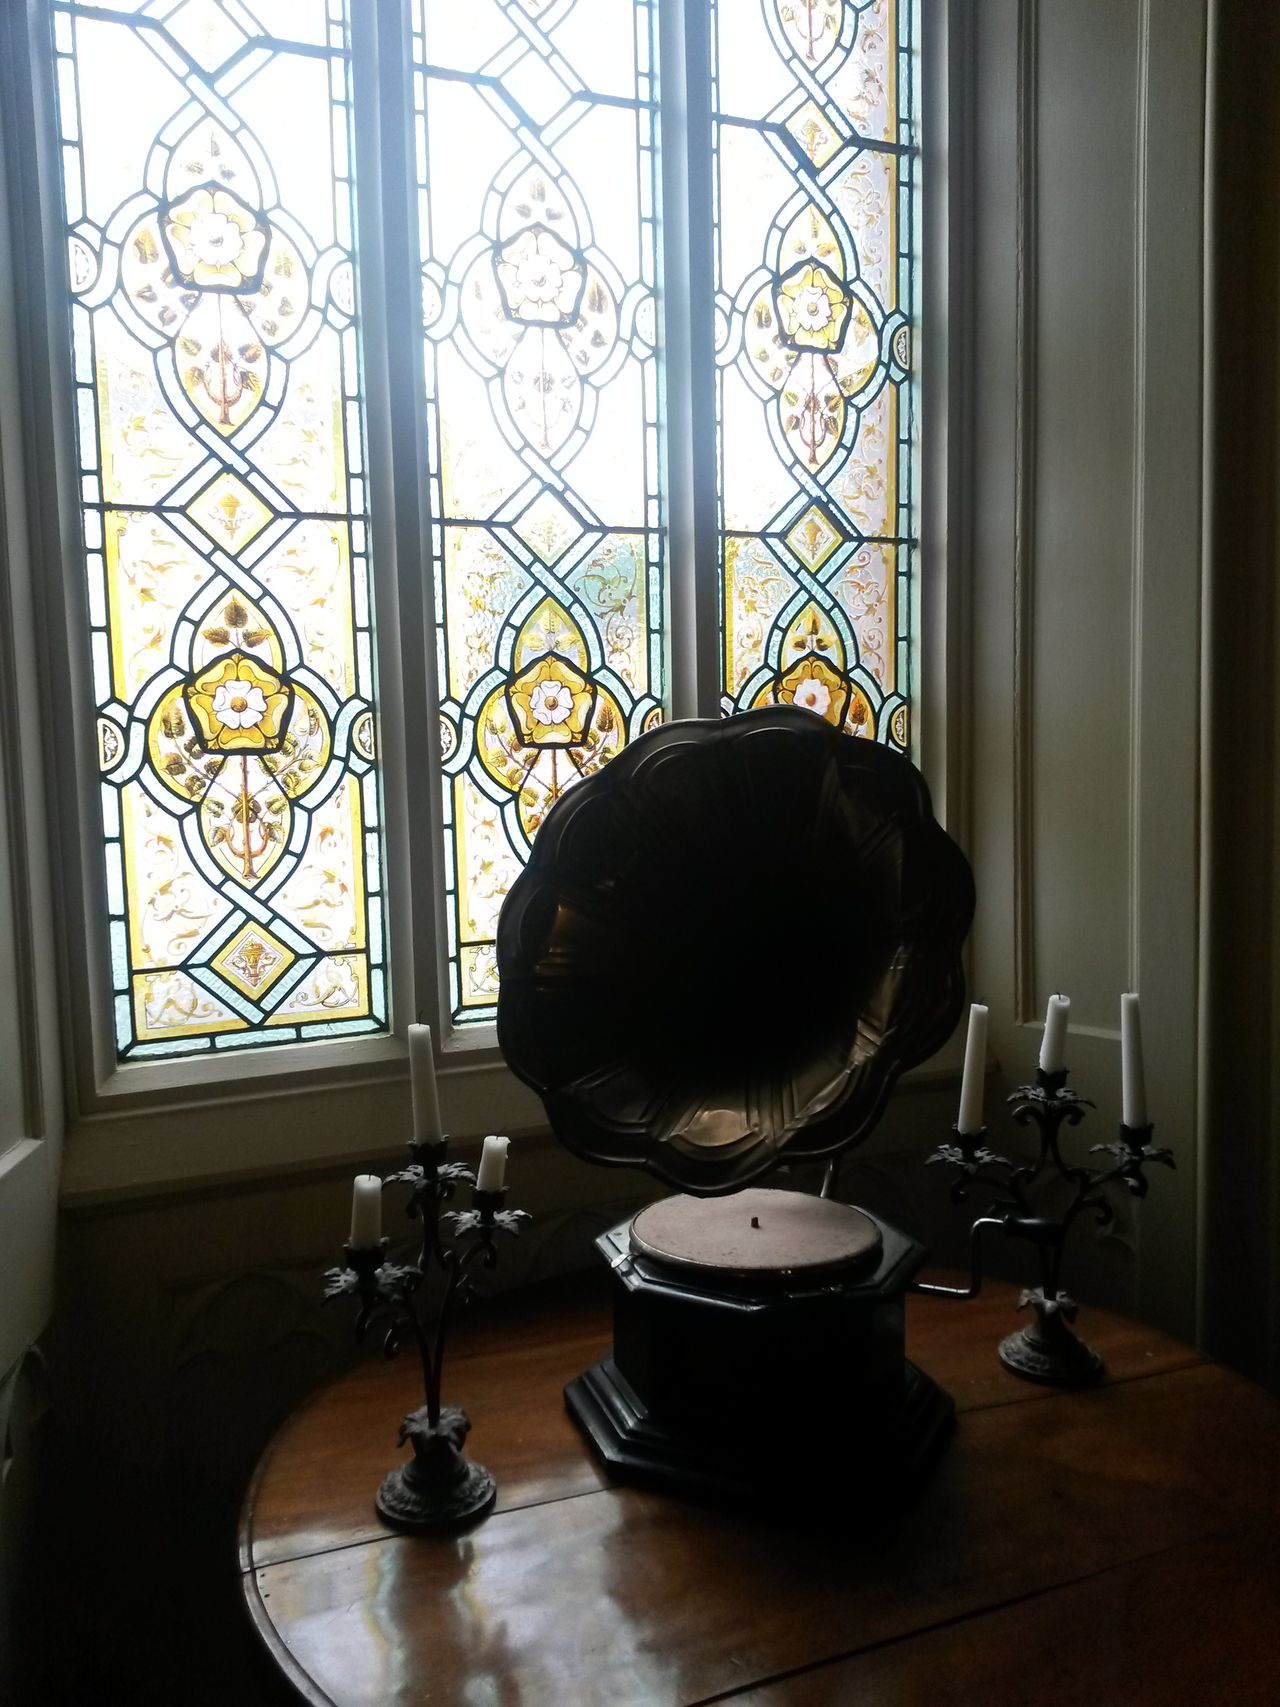 Window No People Indoors  Gramophone Stained Glass Window Stained Glass Britishness Vintage Stuff Retro EyeEmNewHere